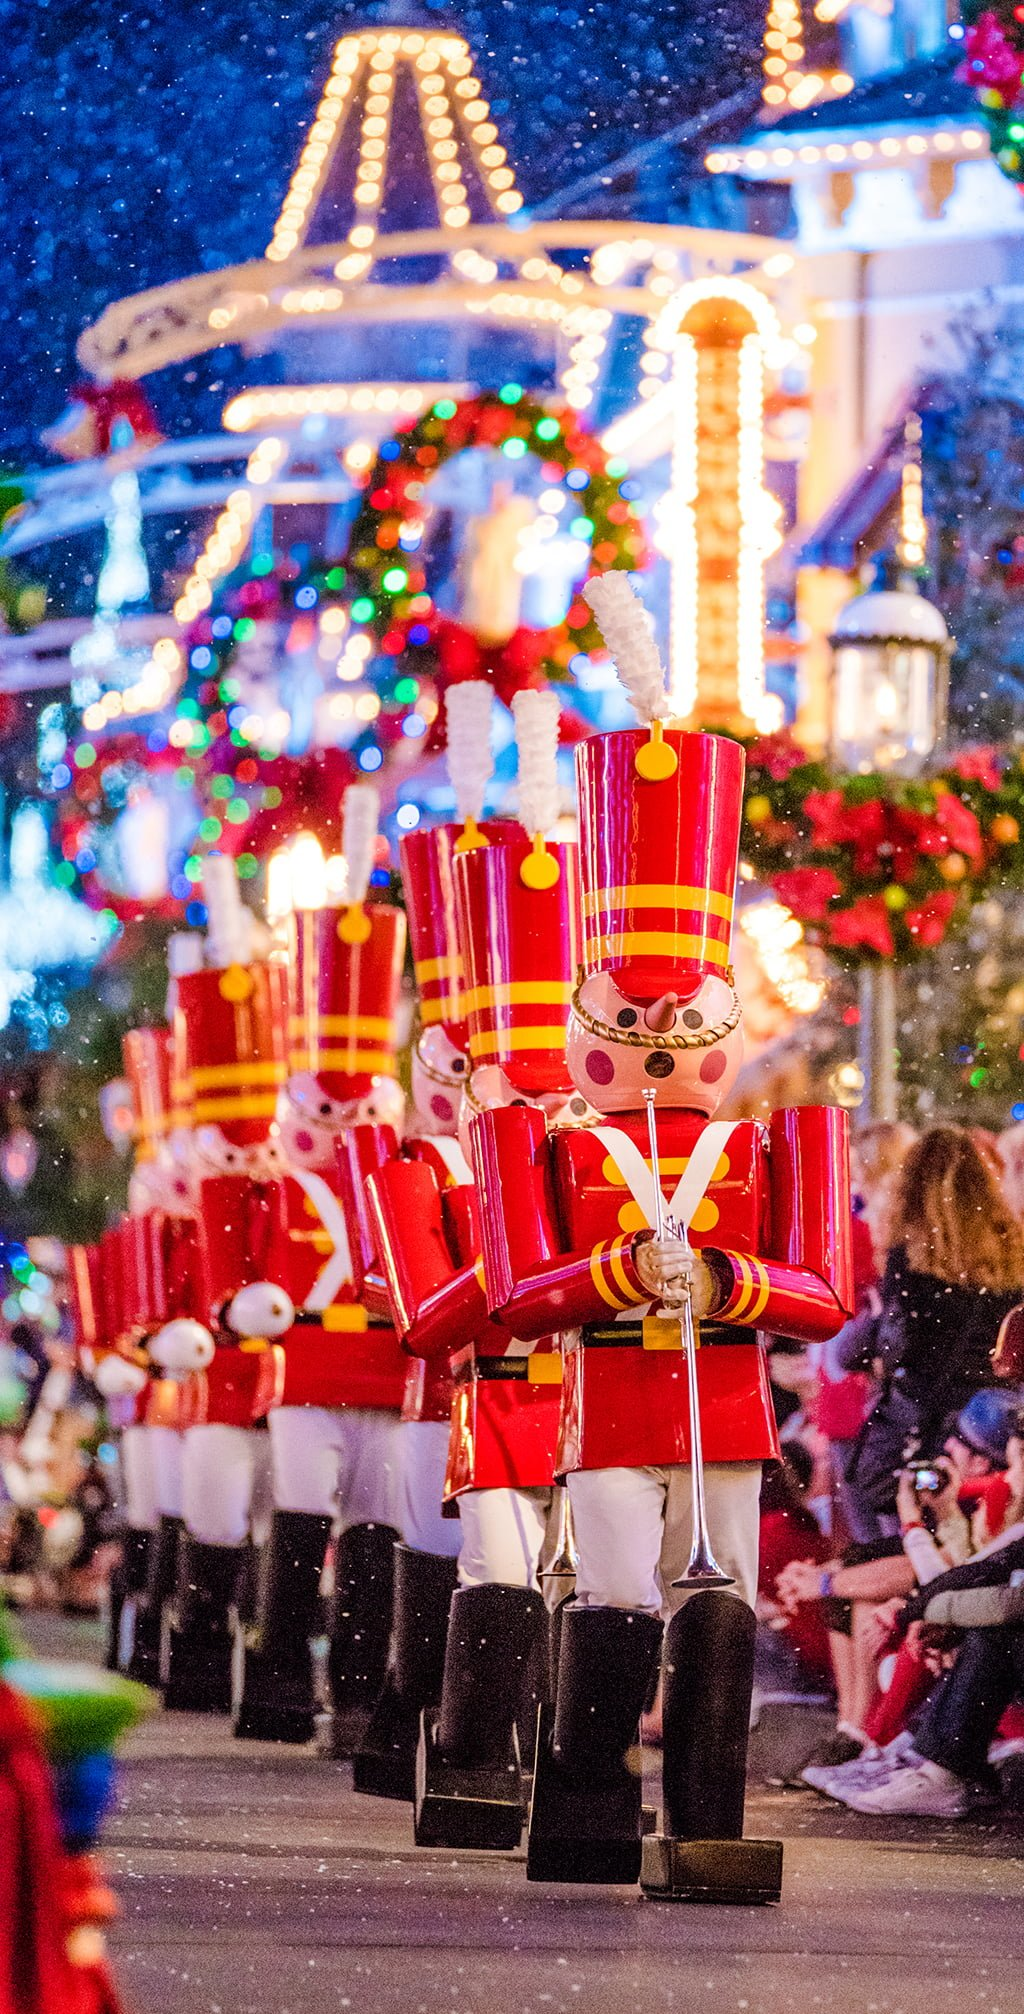 overall the decorations category really sums it up the decorations and background music are what give the parks their festive atmosphere during - When Is Disney World Decorated For Christmas